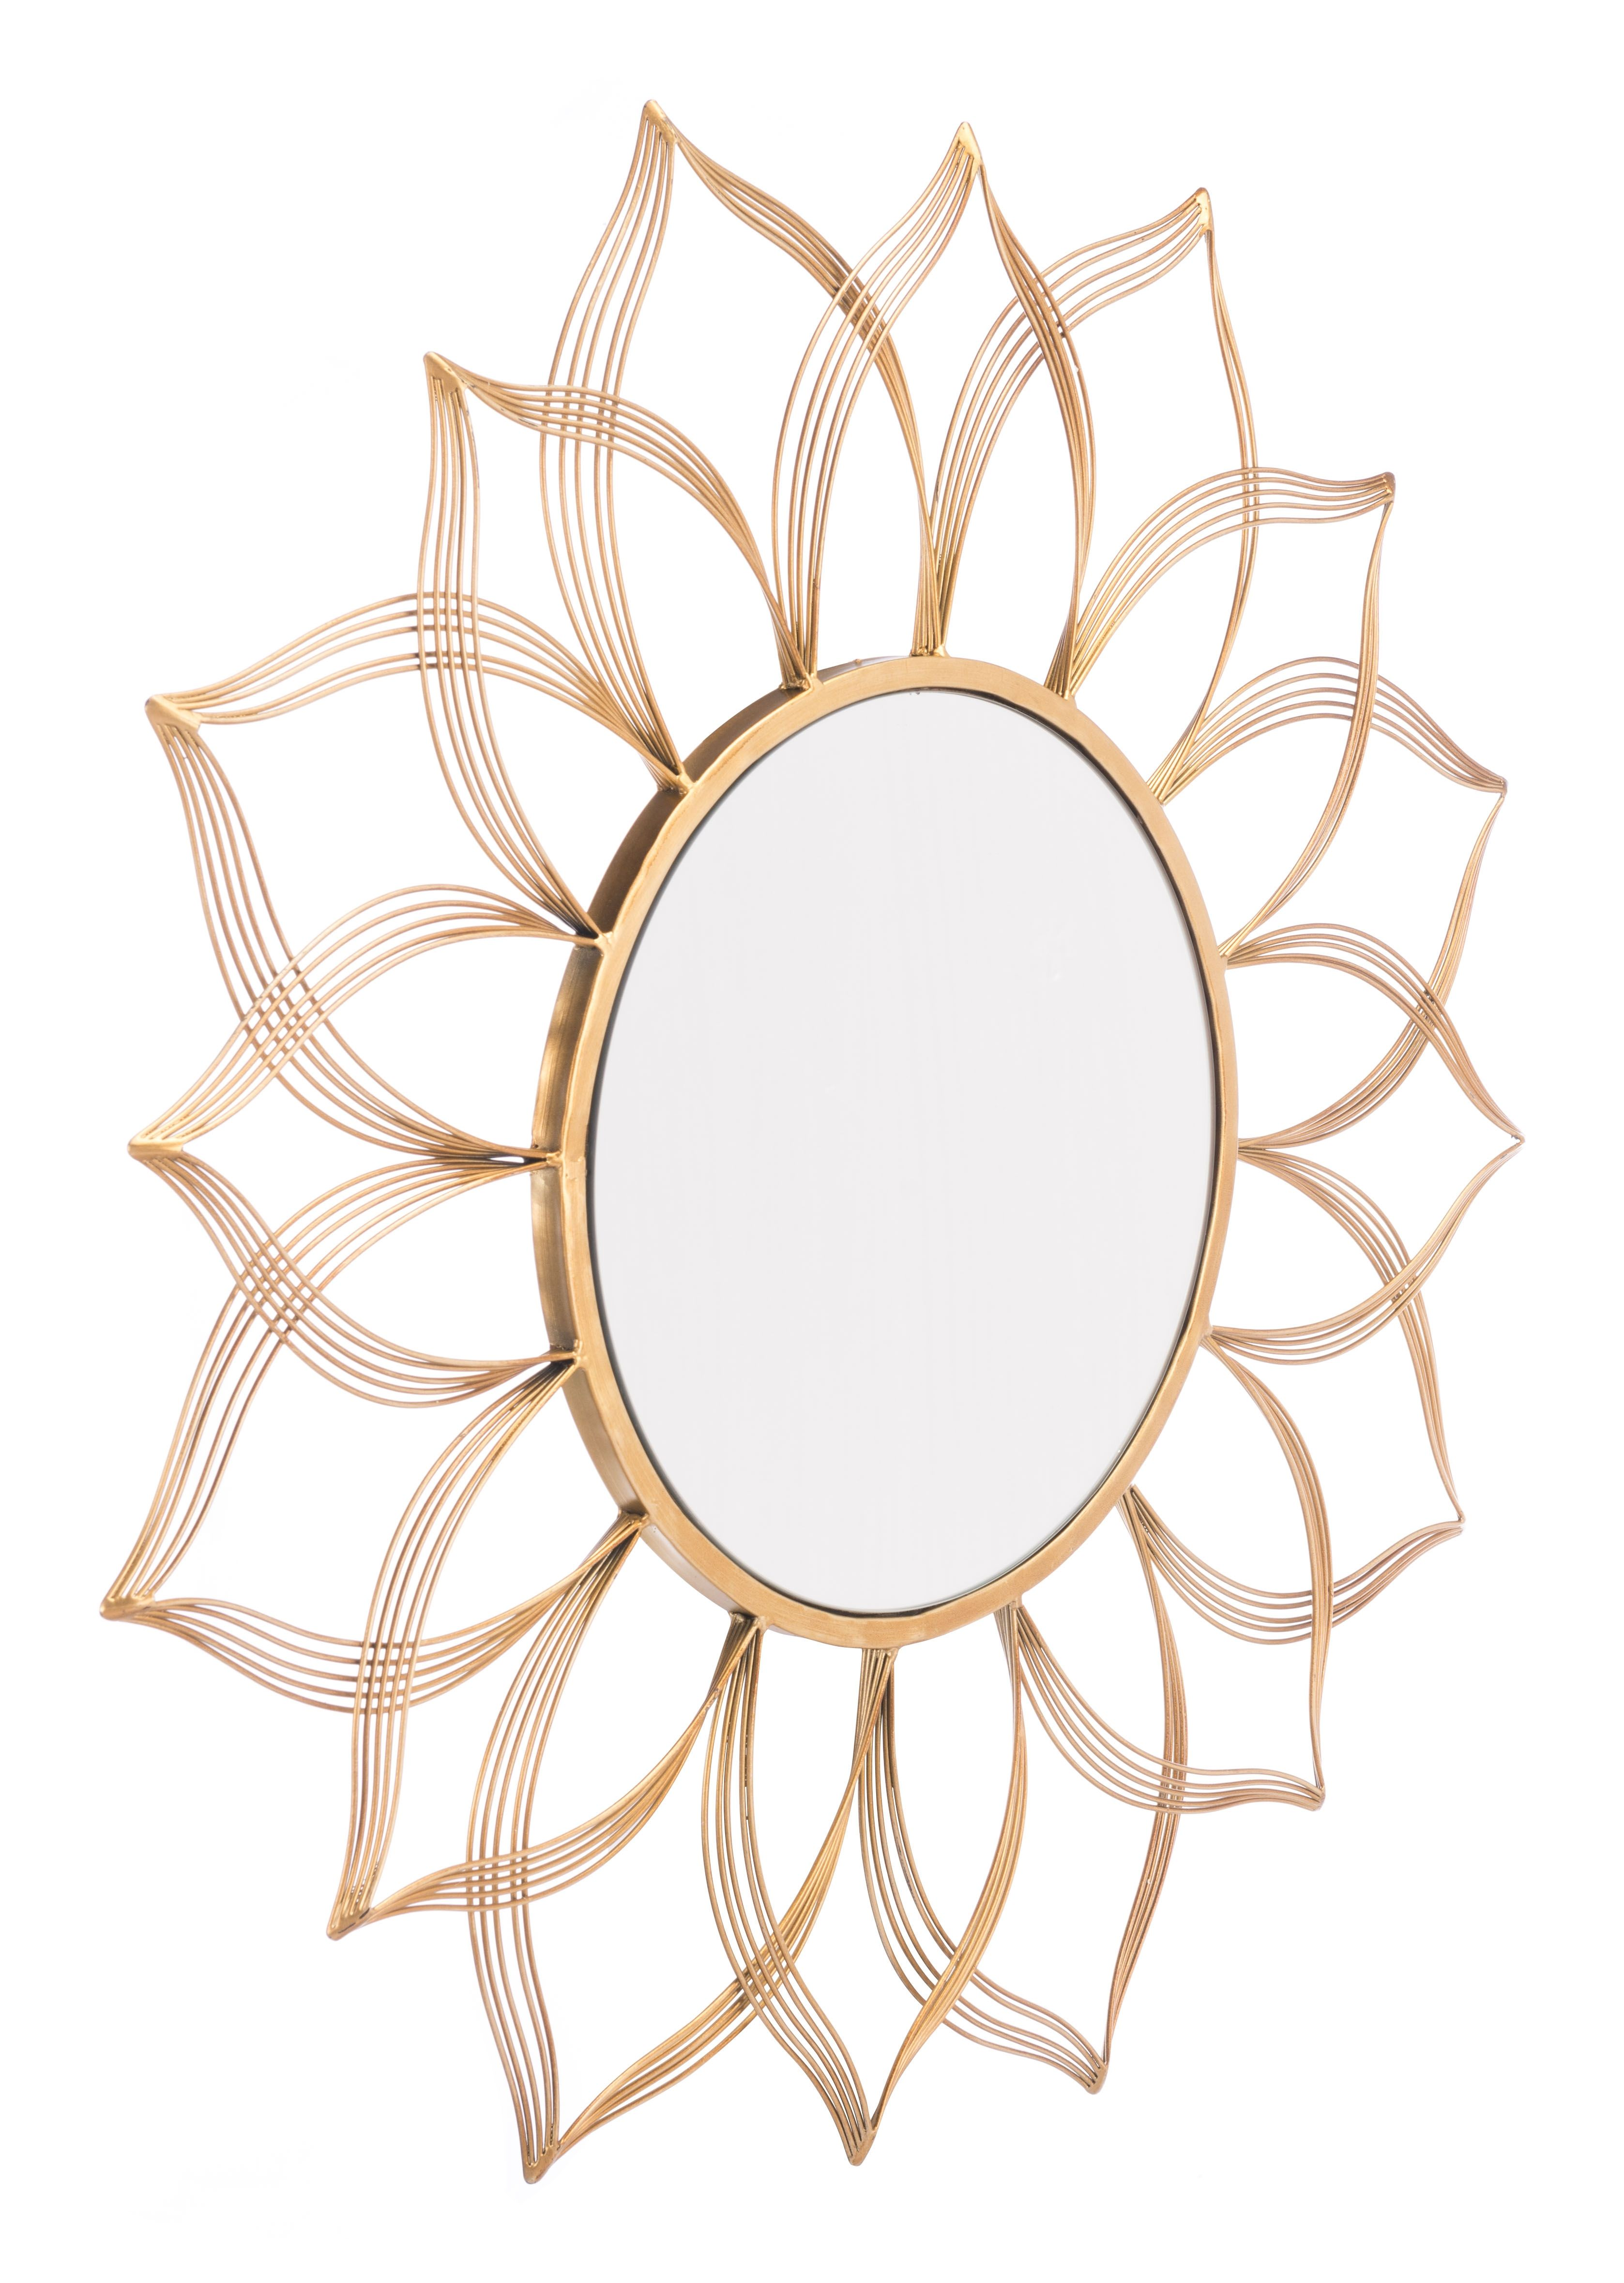 Flor Shaped Wall Mirror Gold Finish